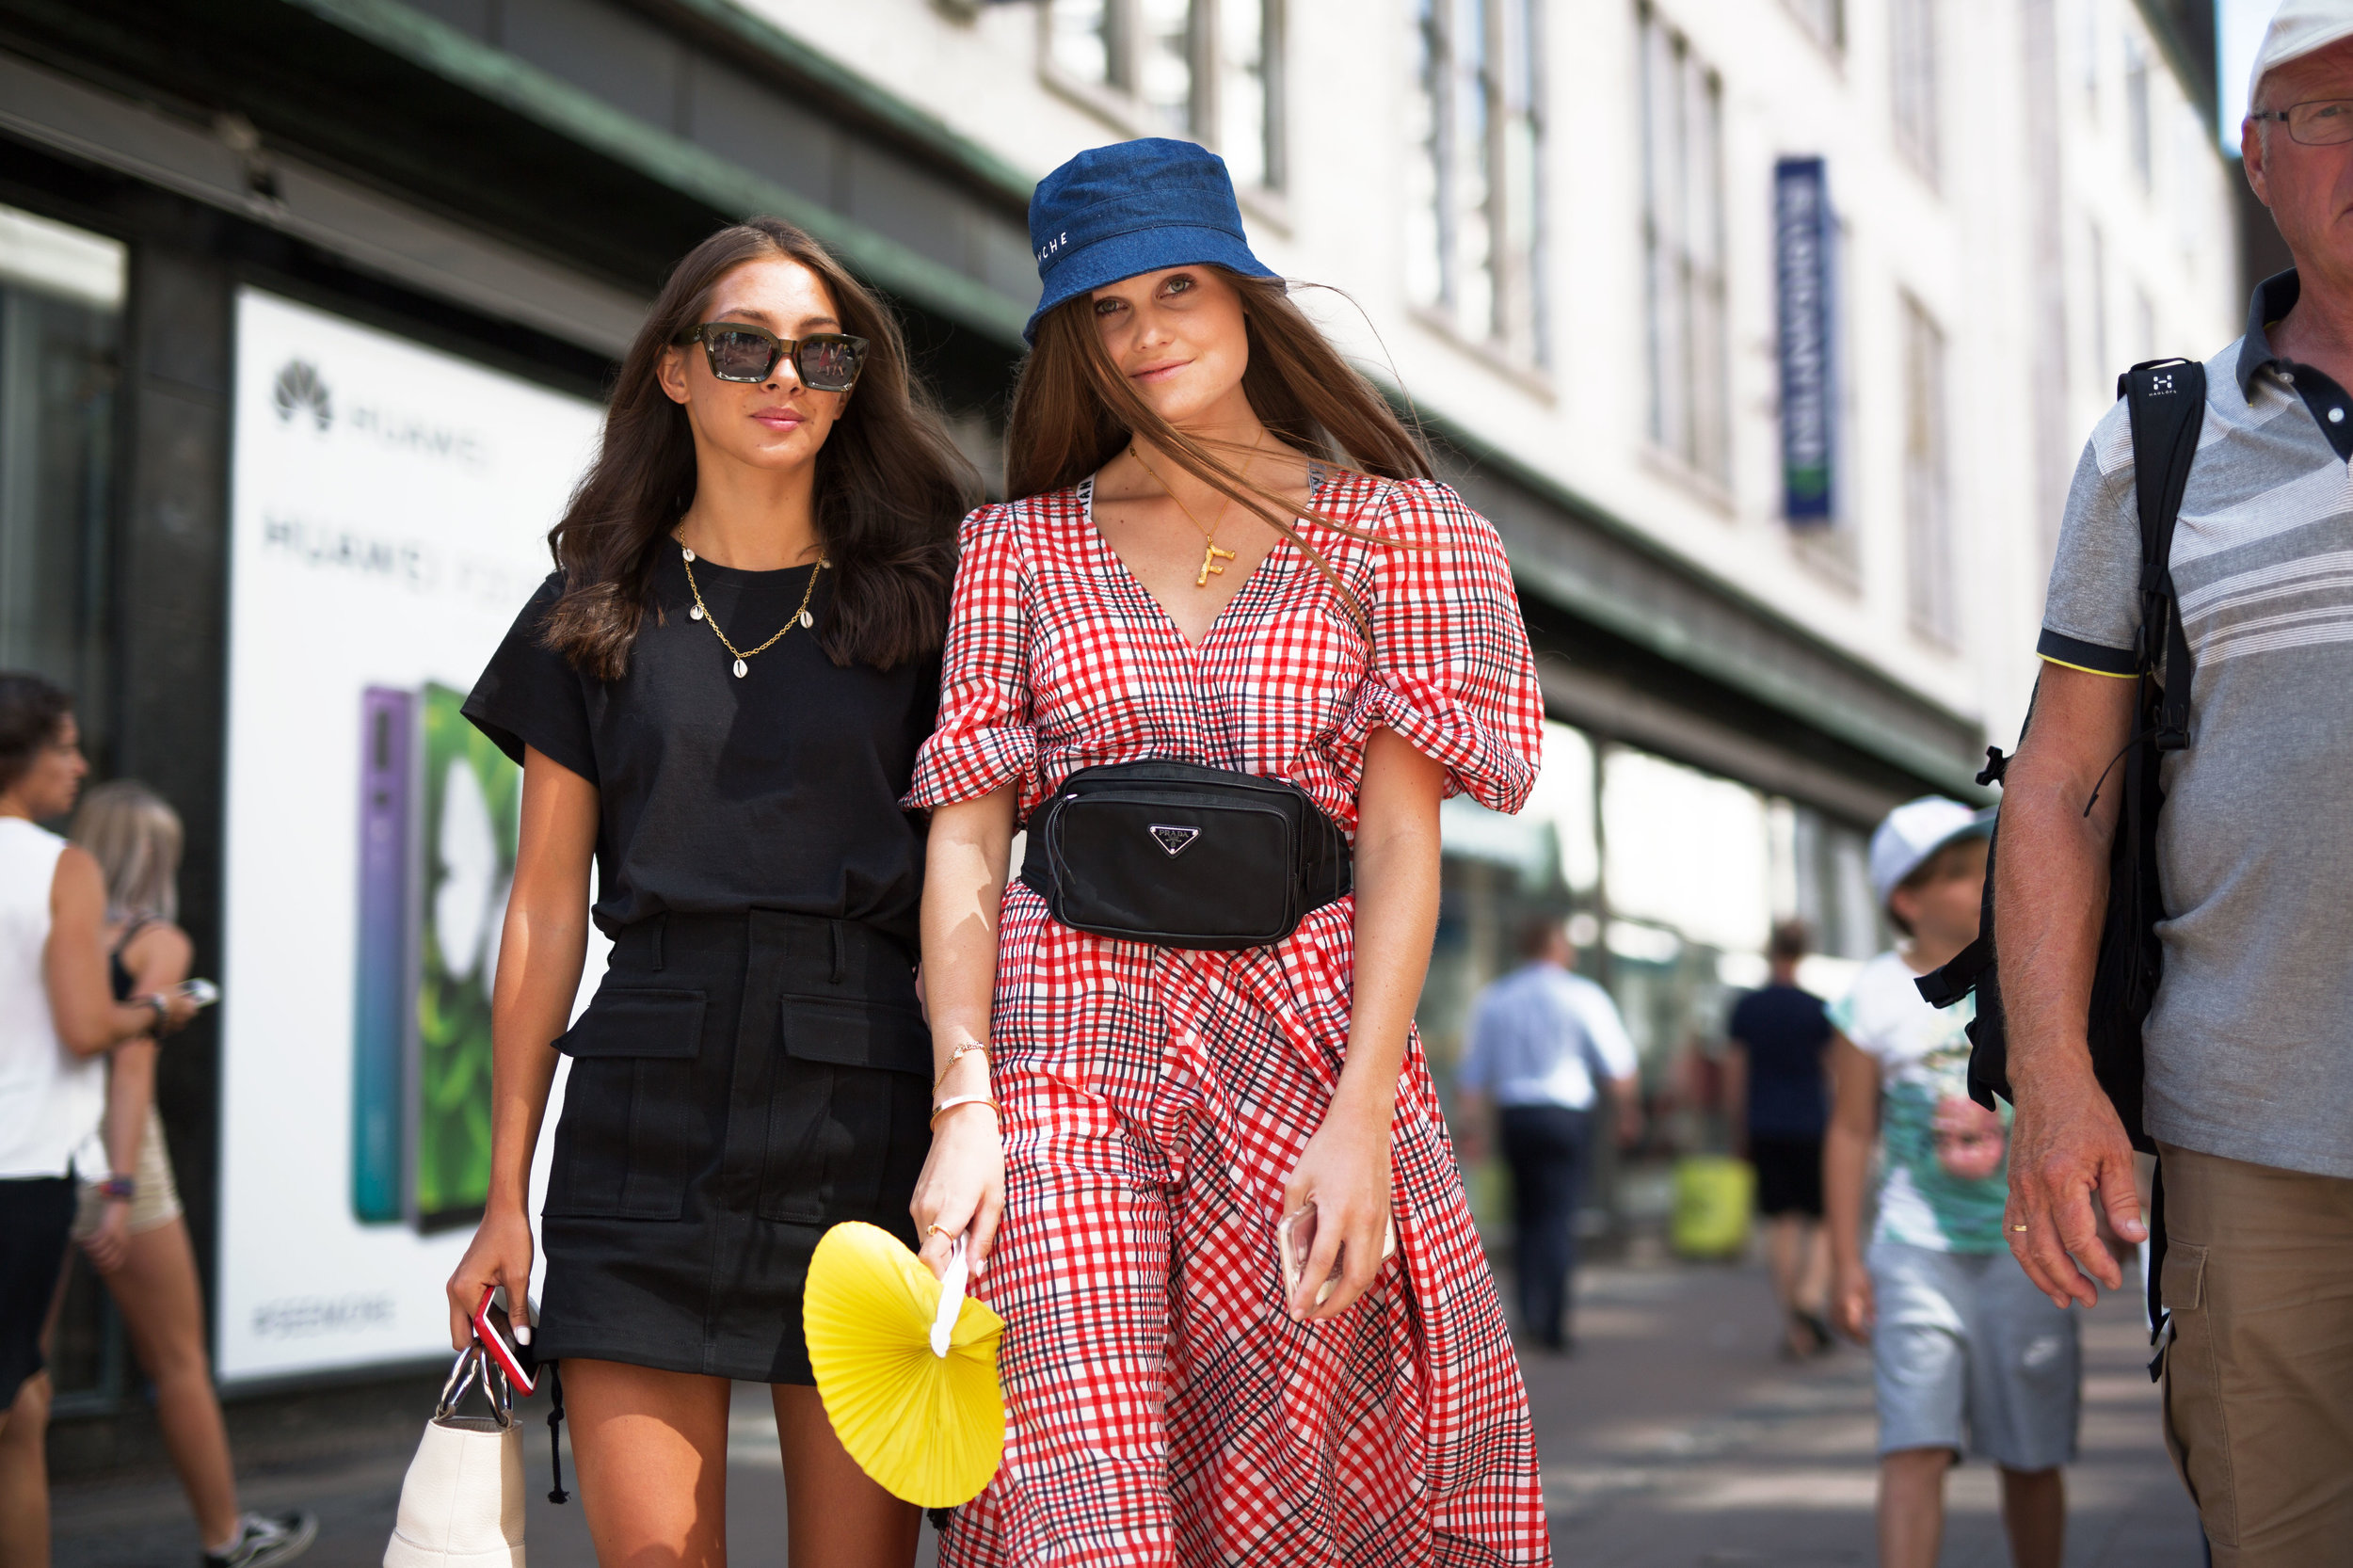 TheStreetland_Copenhagen_Fashion_Week_SS19_19.jpg